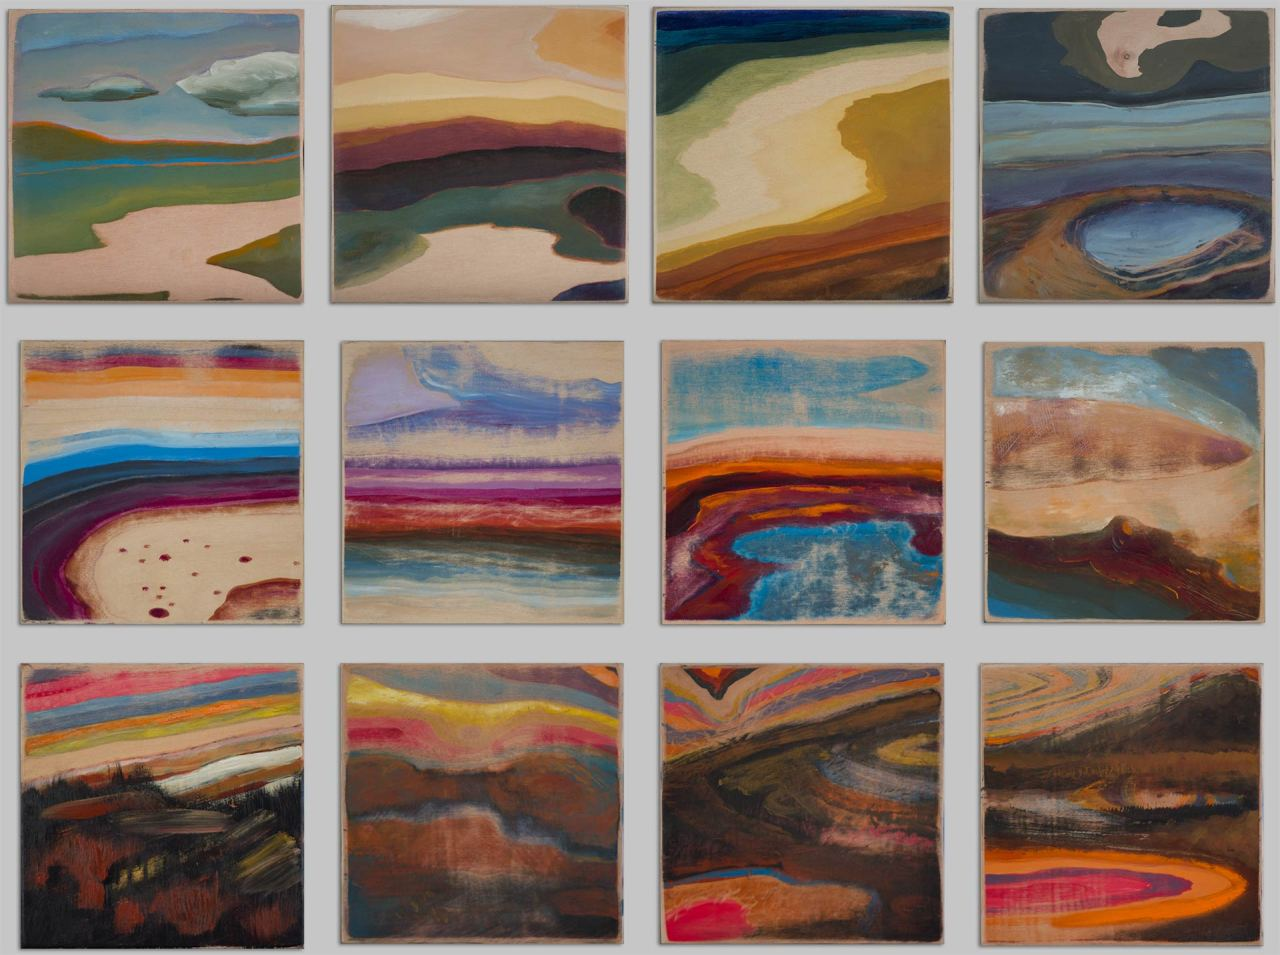 Small simple landscape paintings by Steve Miller titled Woodgrain Landscapes, acrylic on birch plywood, © Steve Miller 2015.